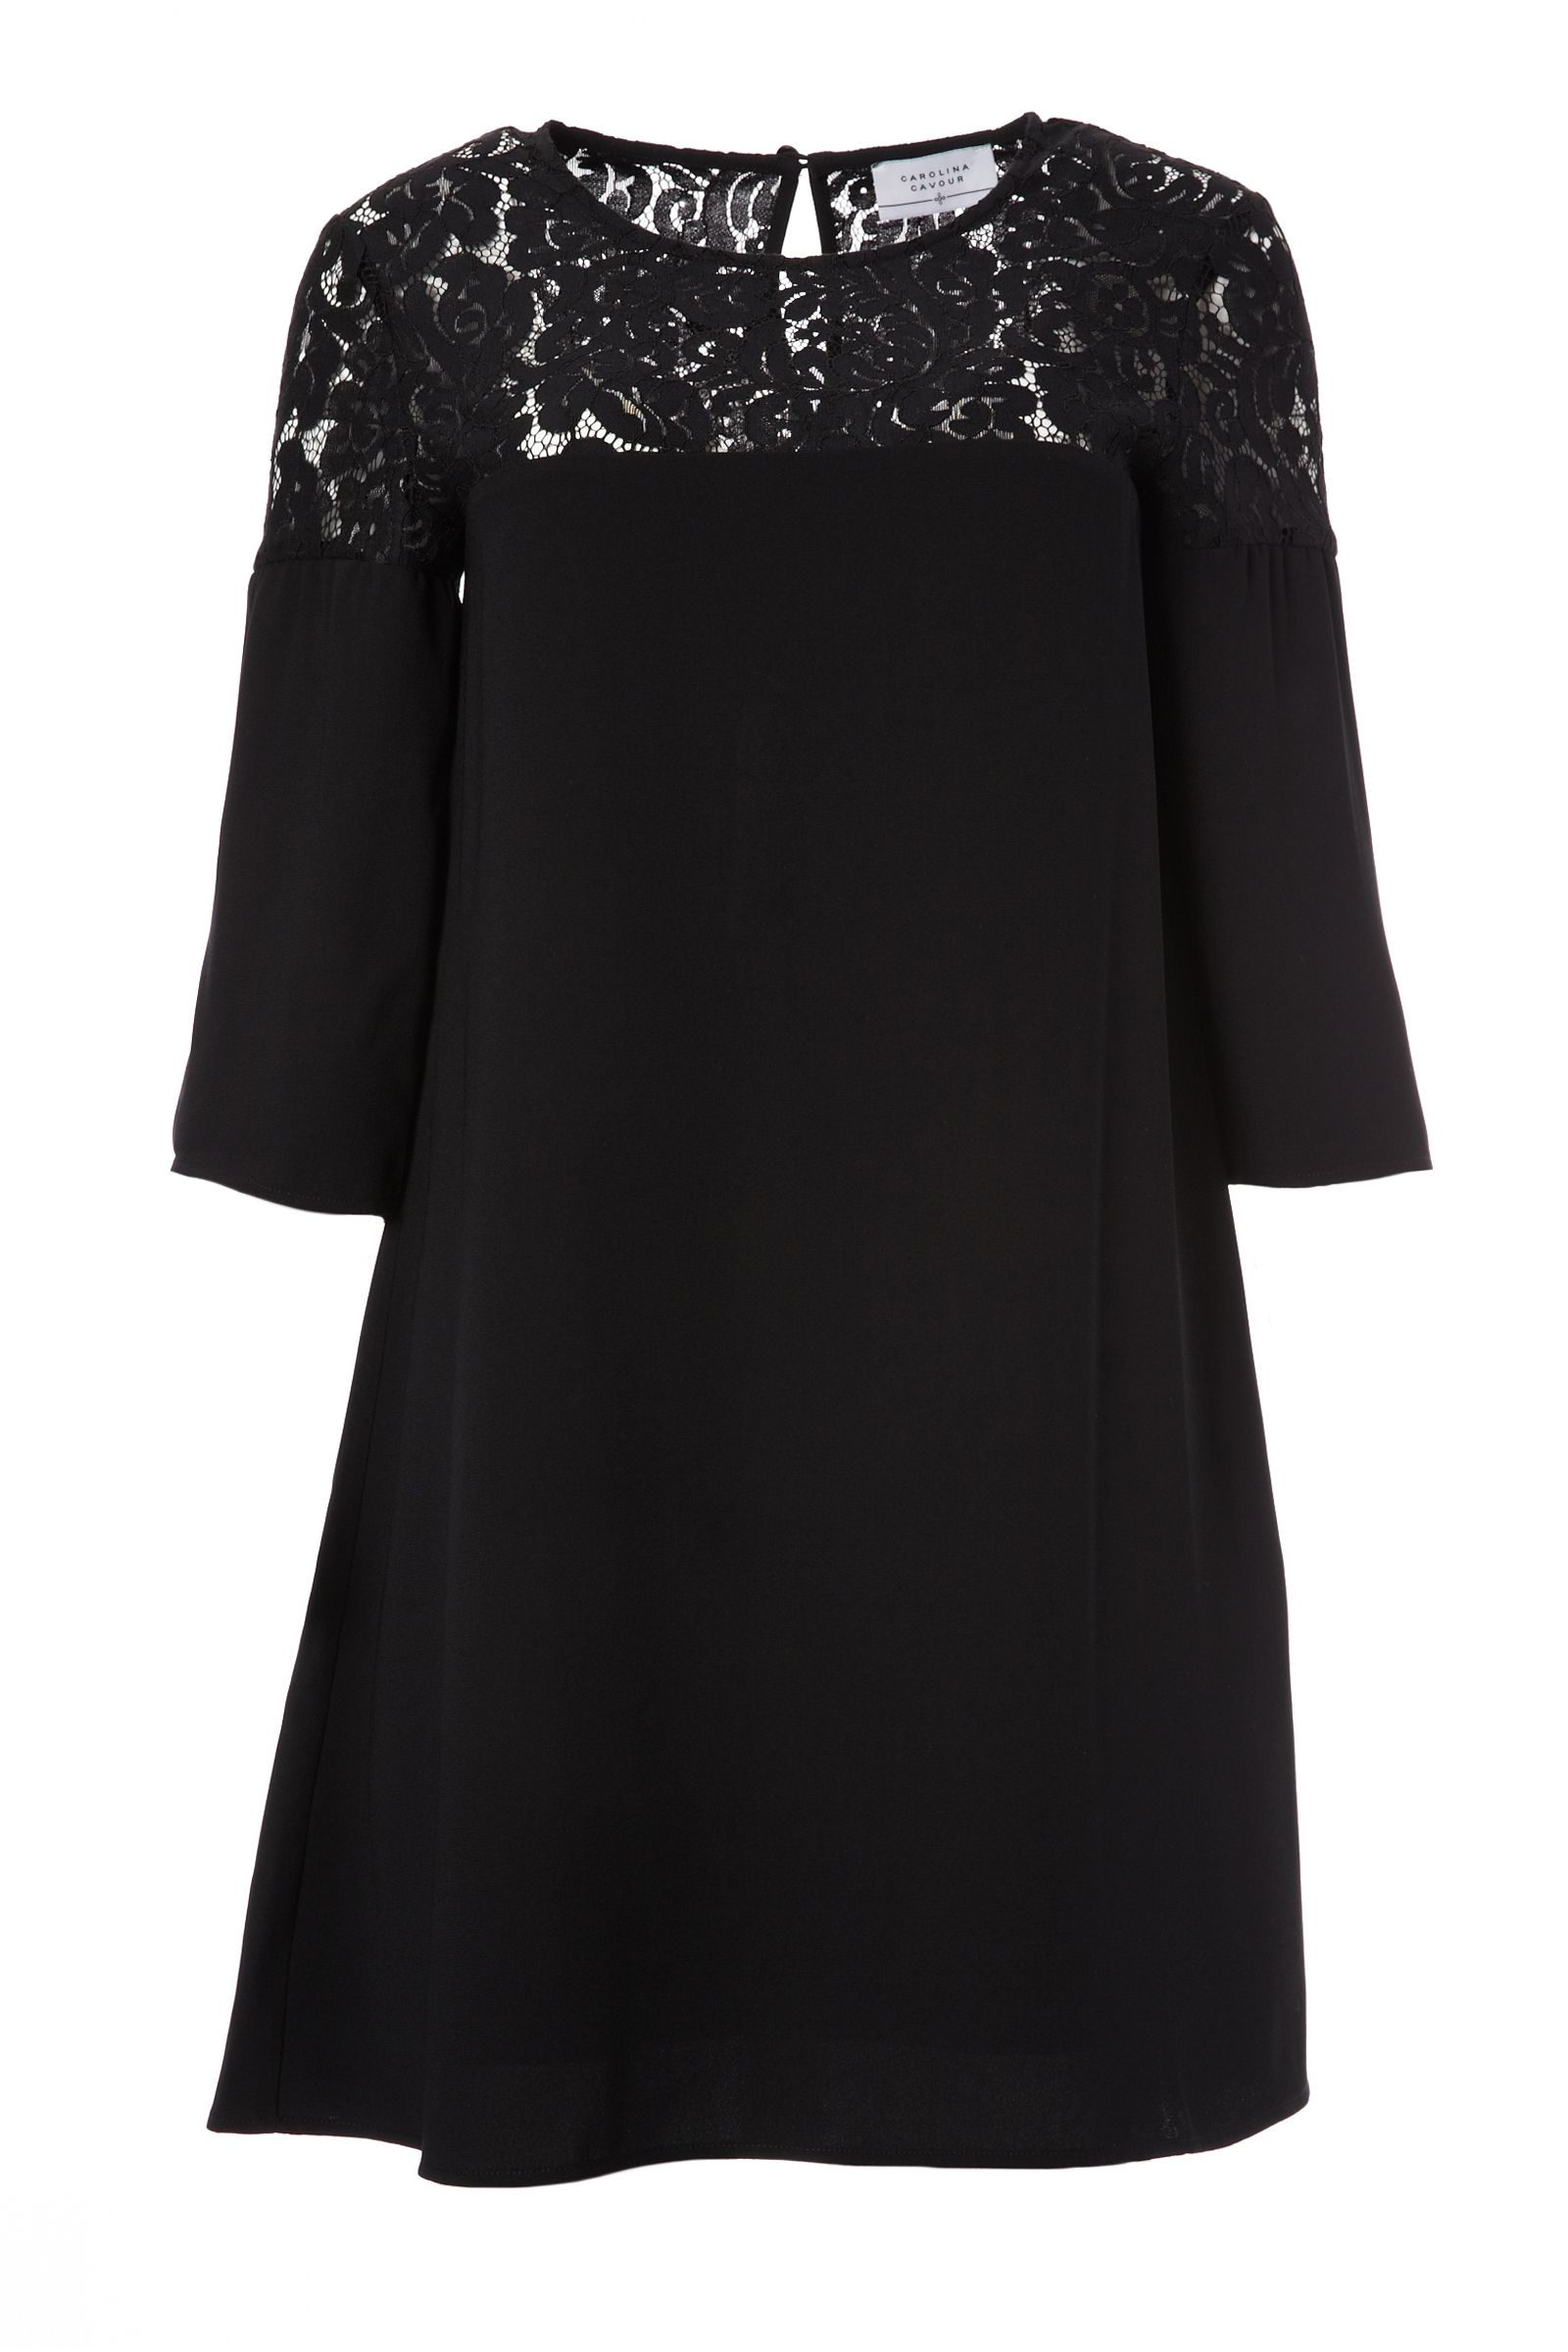 Carolina Cavour 3/4 Length Sleeve Dress, Black